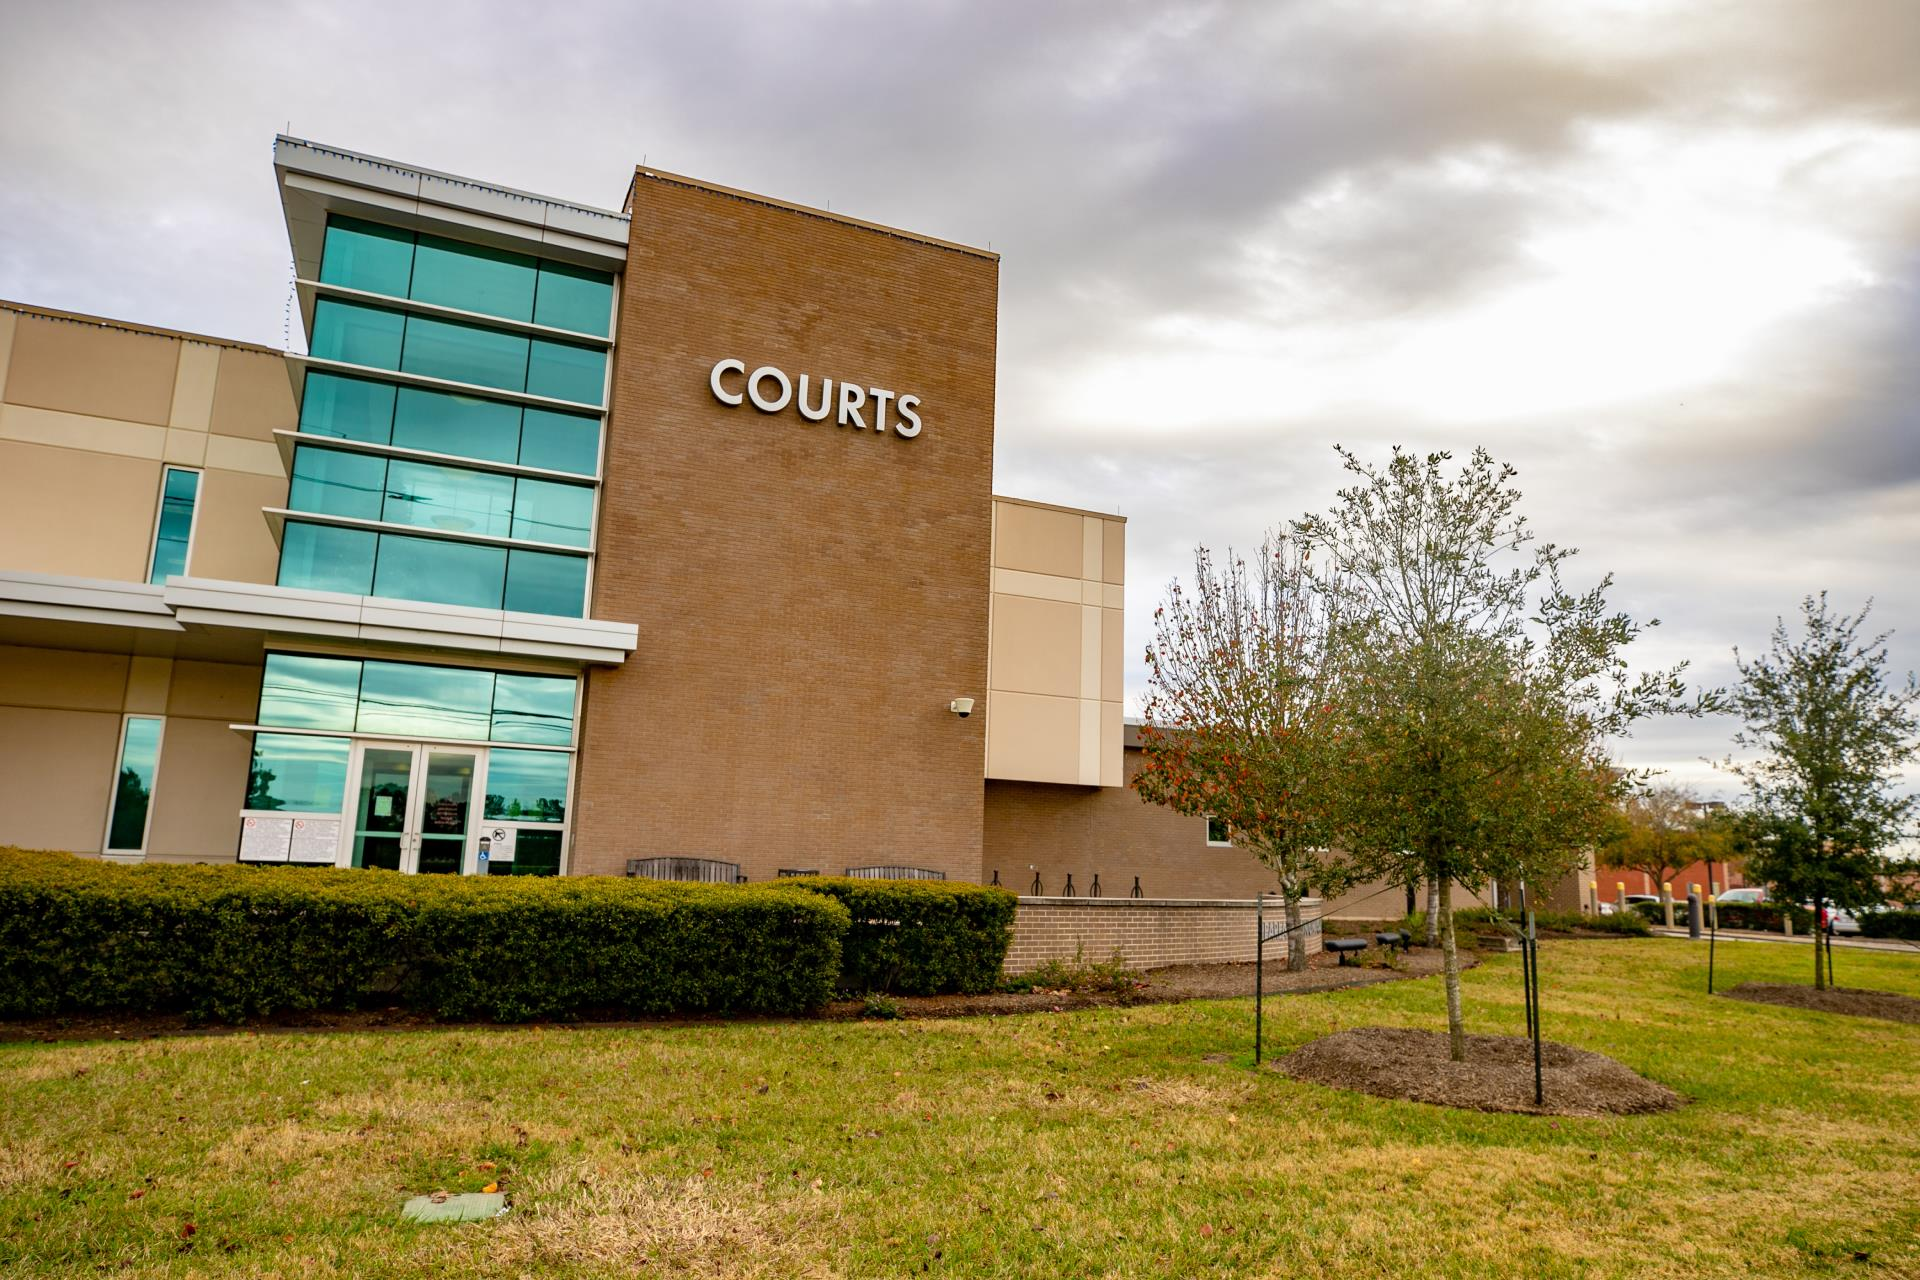 Pearland Courts and PD Execute Texas Warrant Roudup